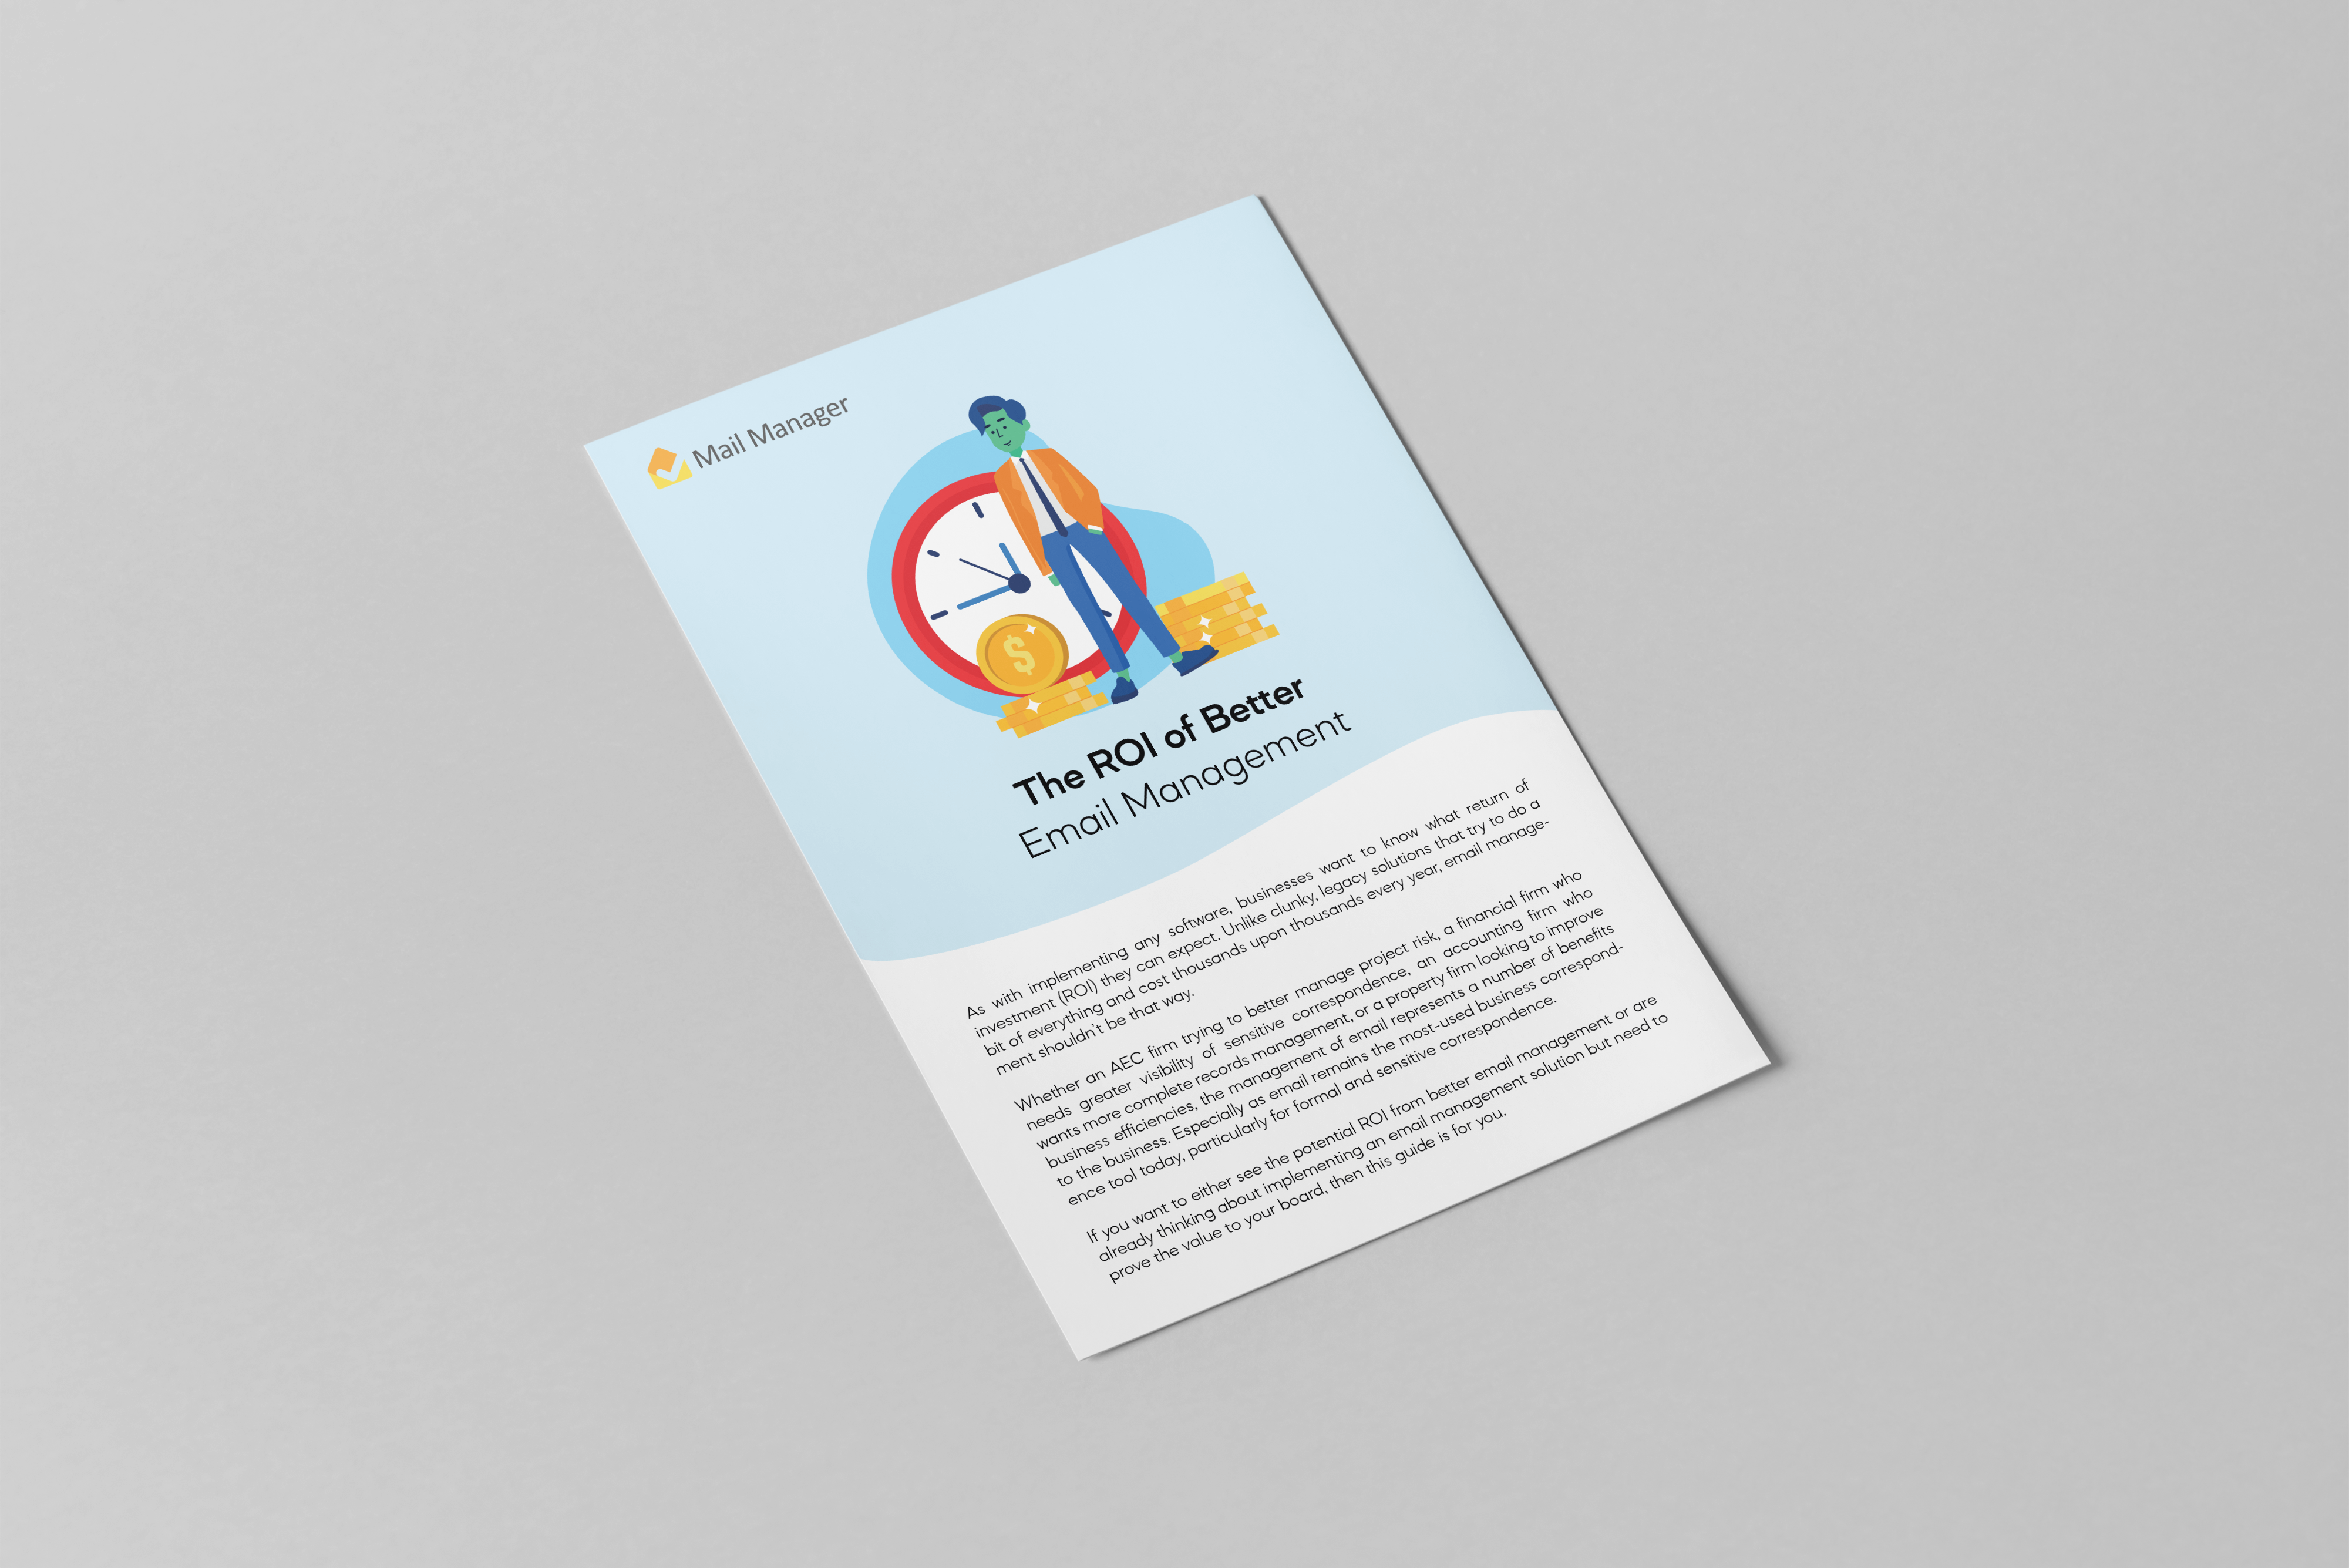 The ROI of better email management_image.pdf